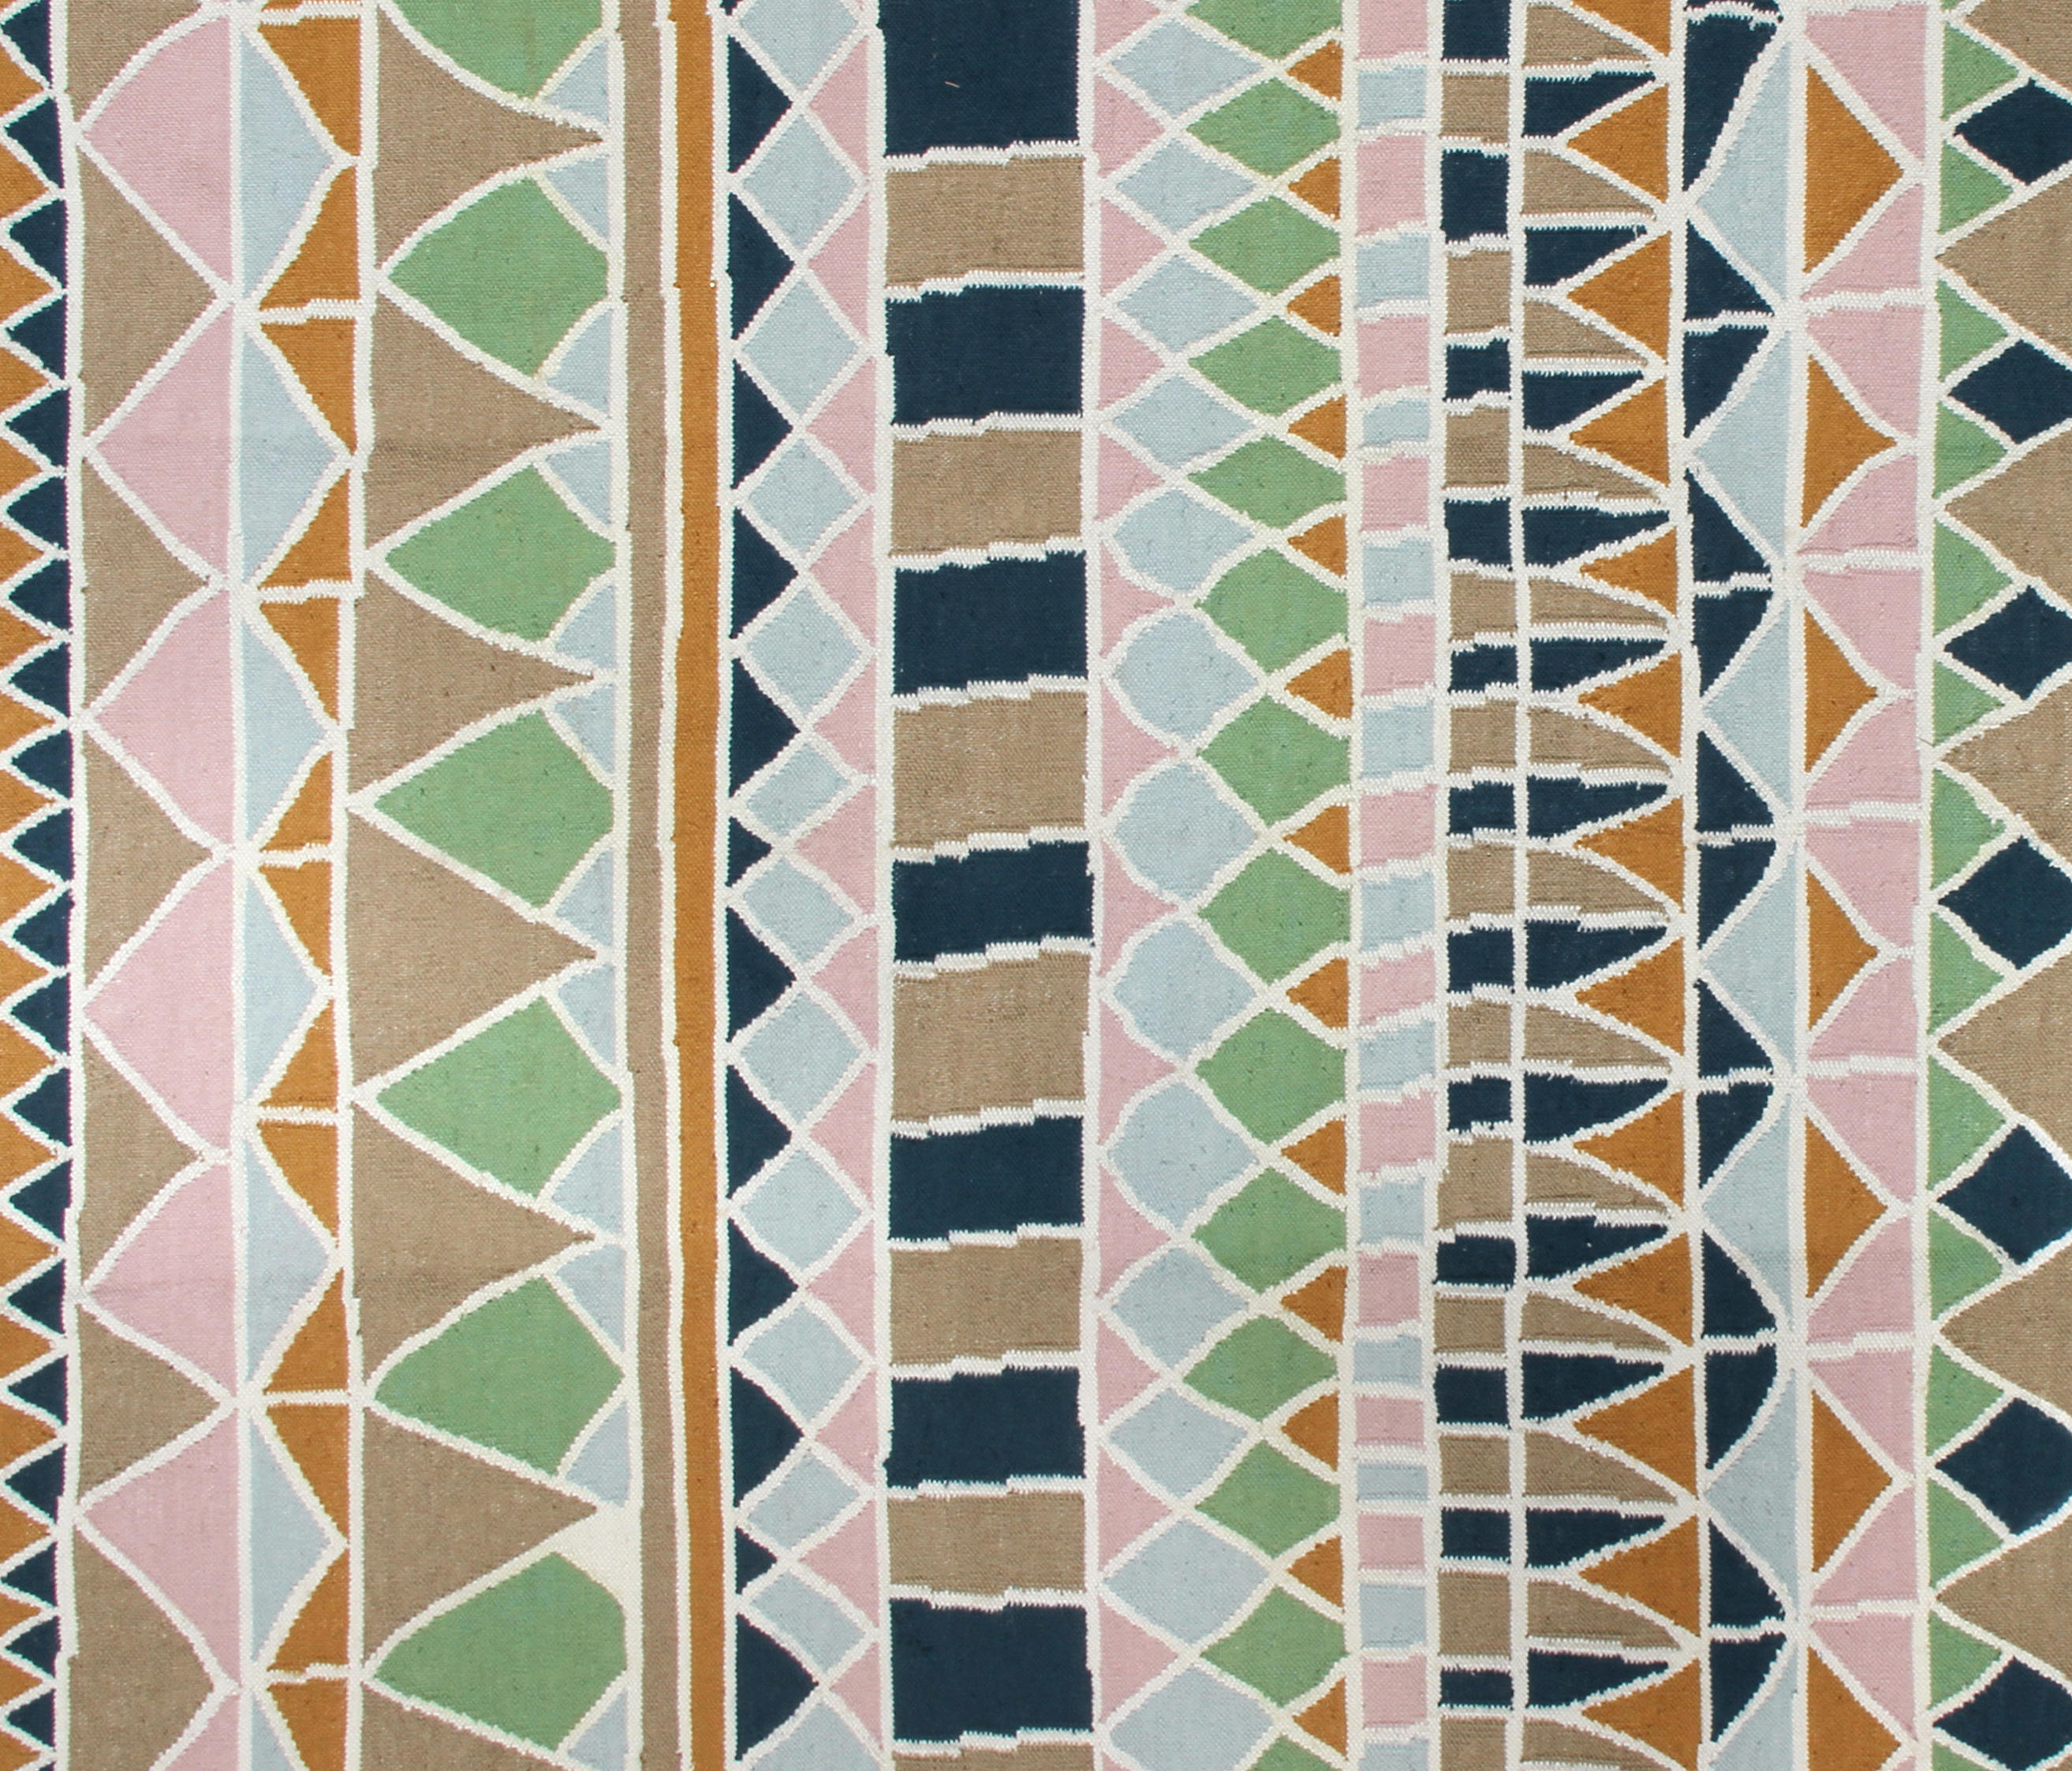 Mosaic Rugs From Now Carpets Architonic